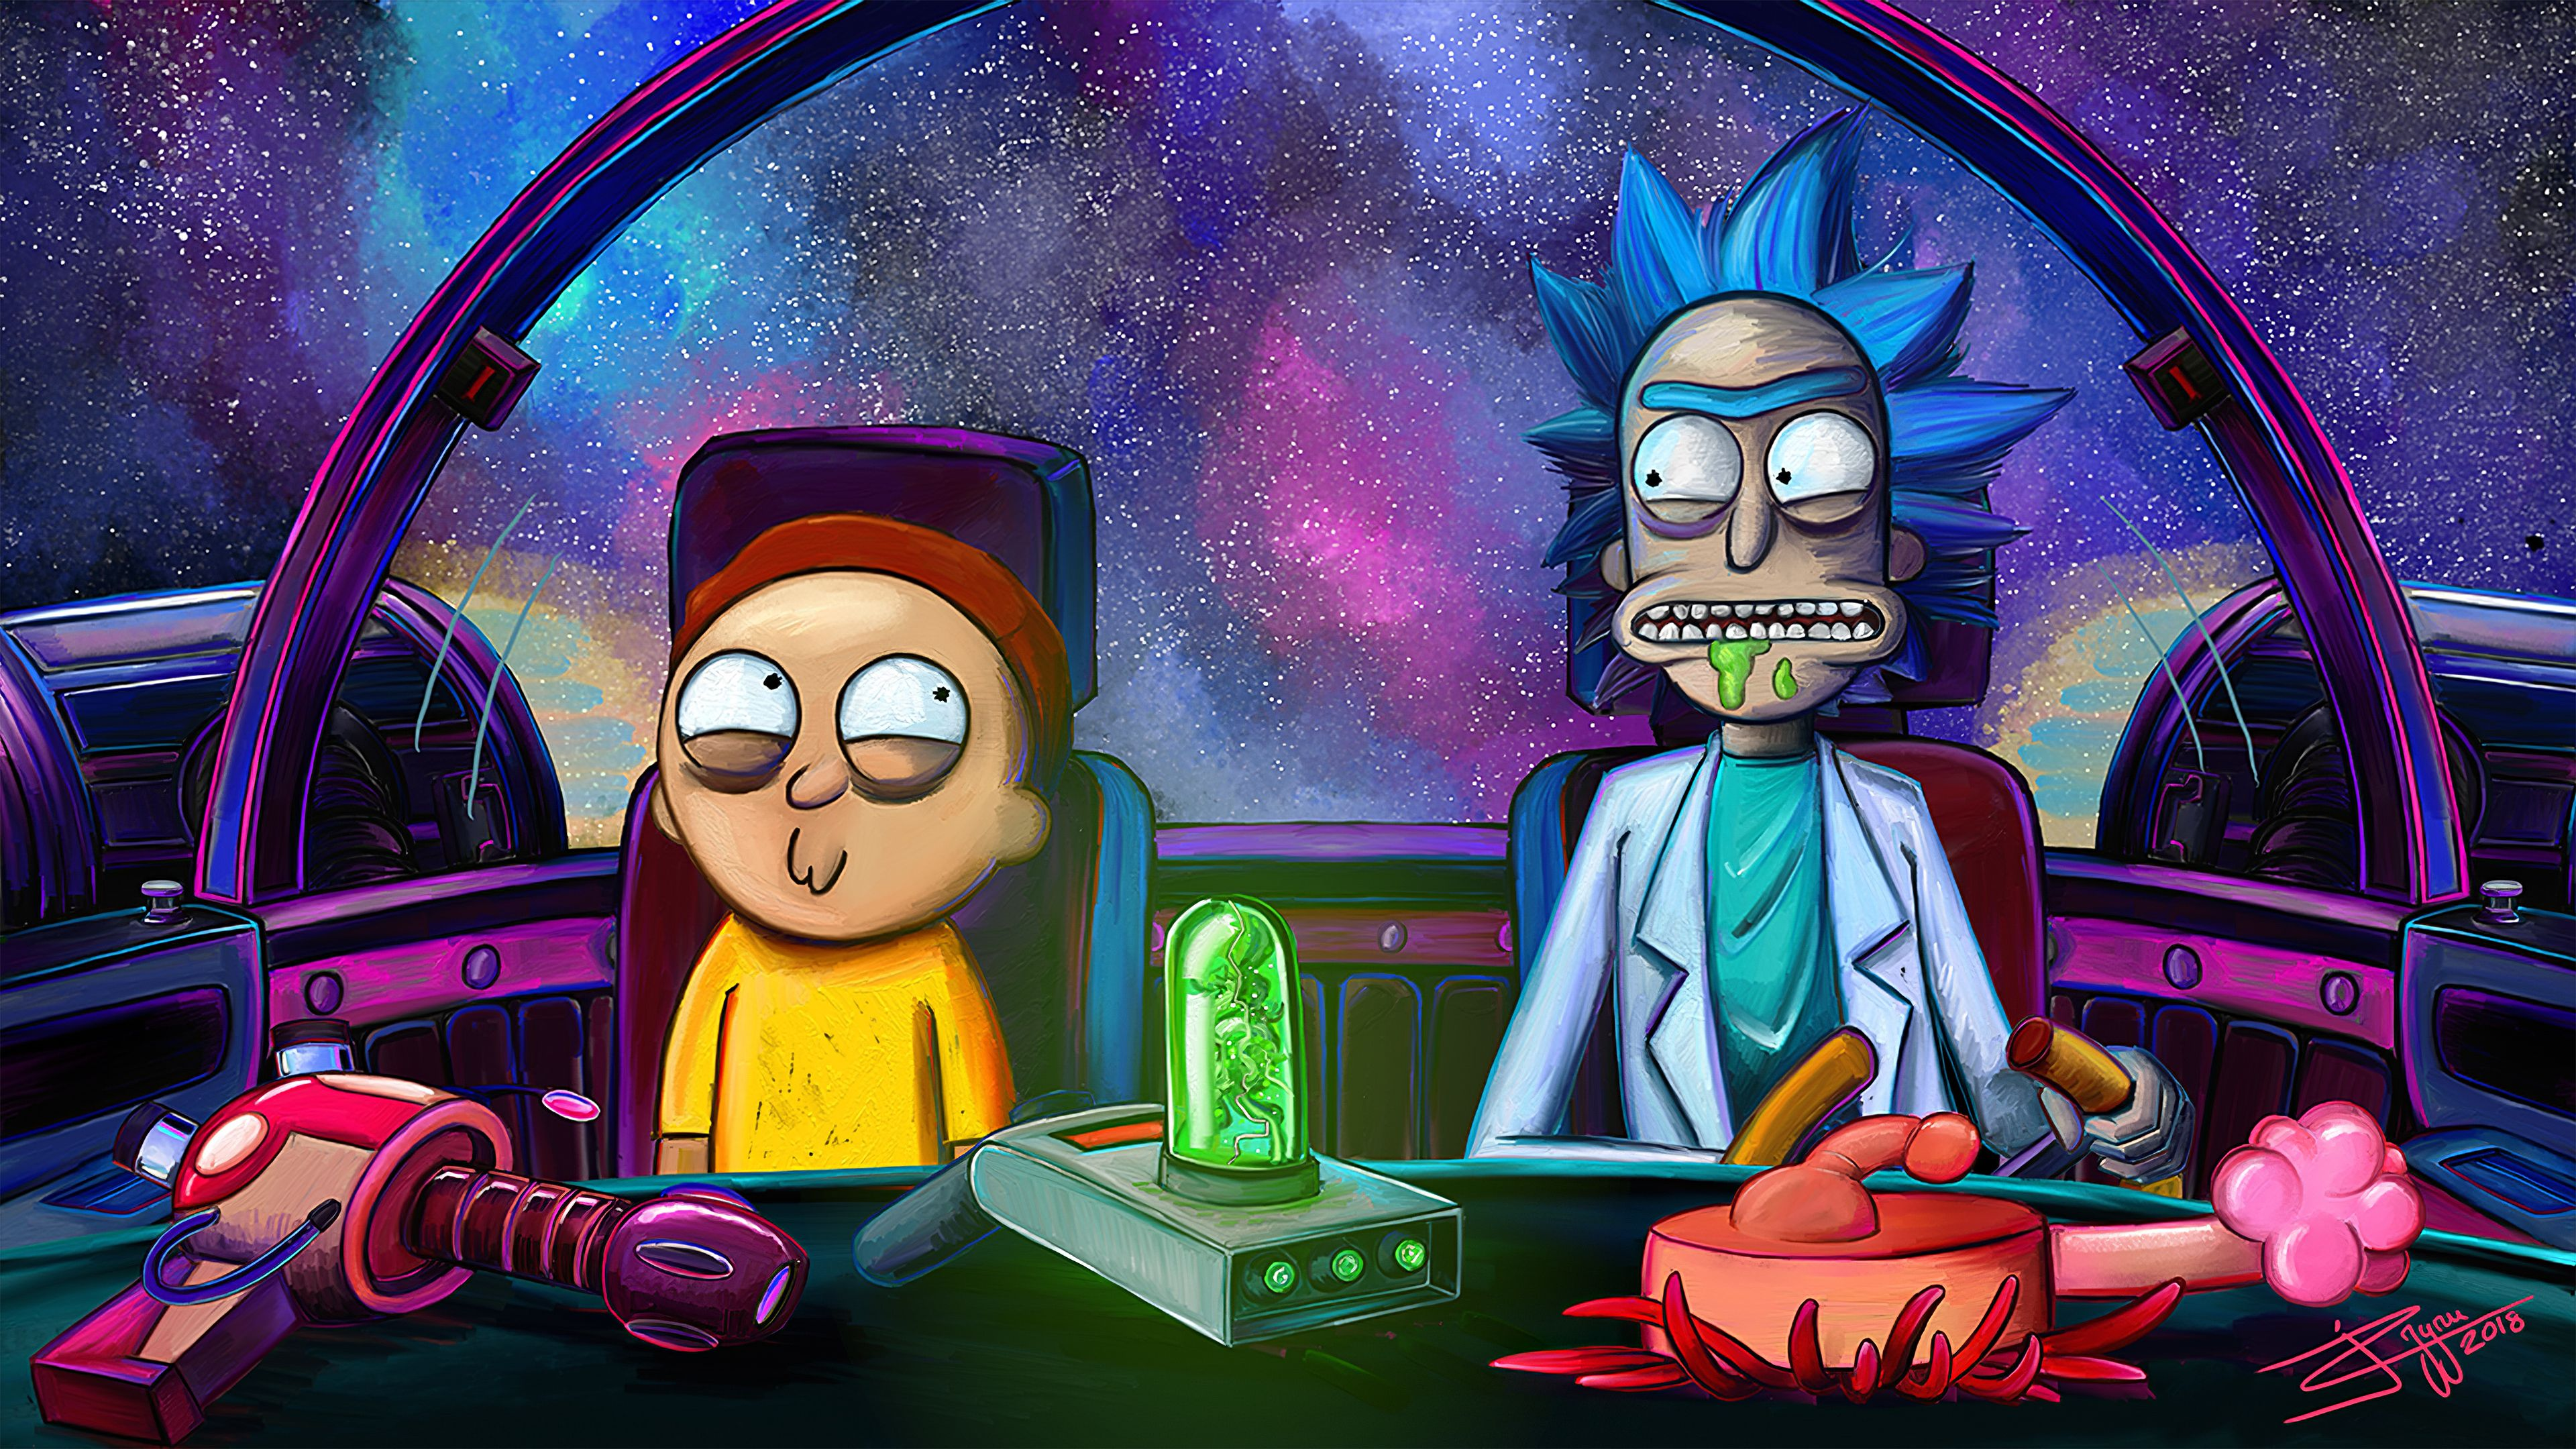 Rick And Morty Trippy Desktop Wallpapers - Wallpaper Cave